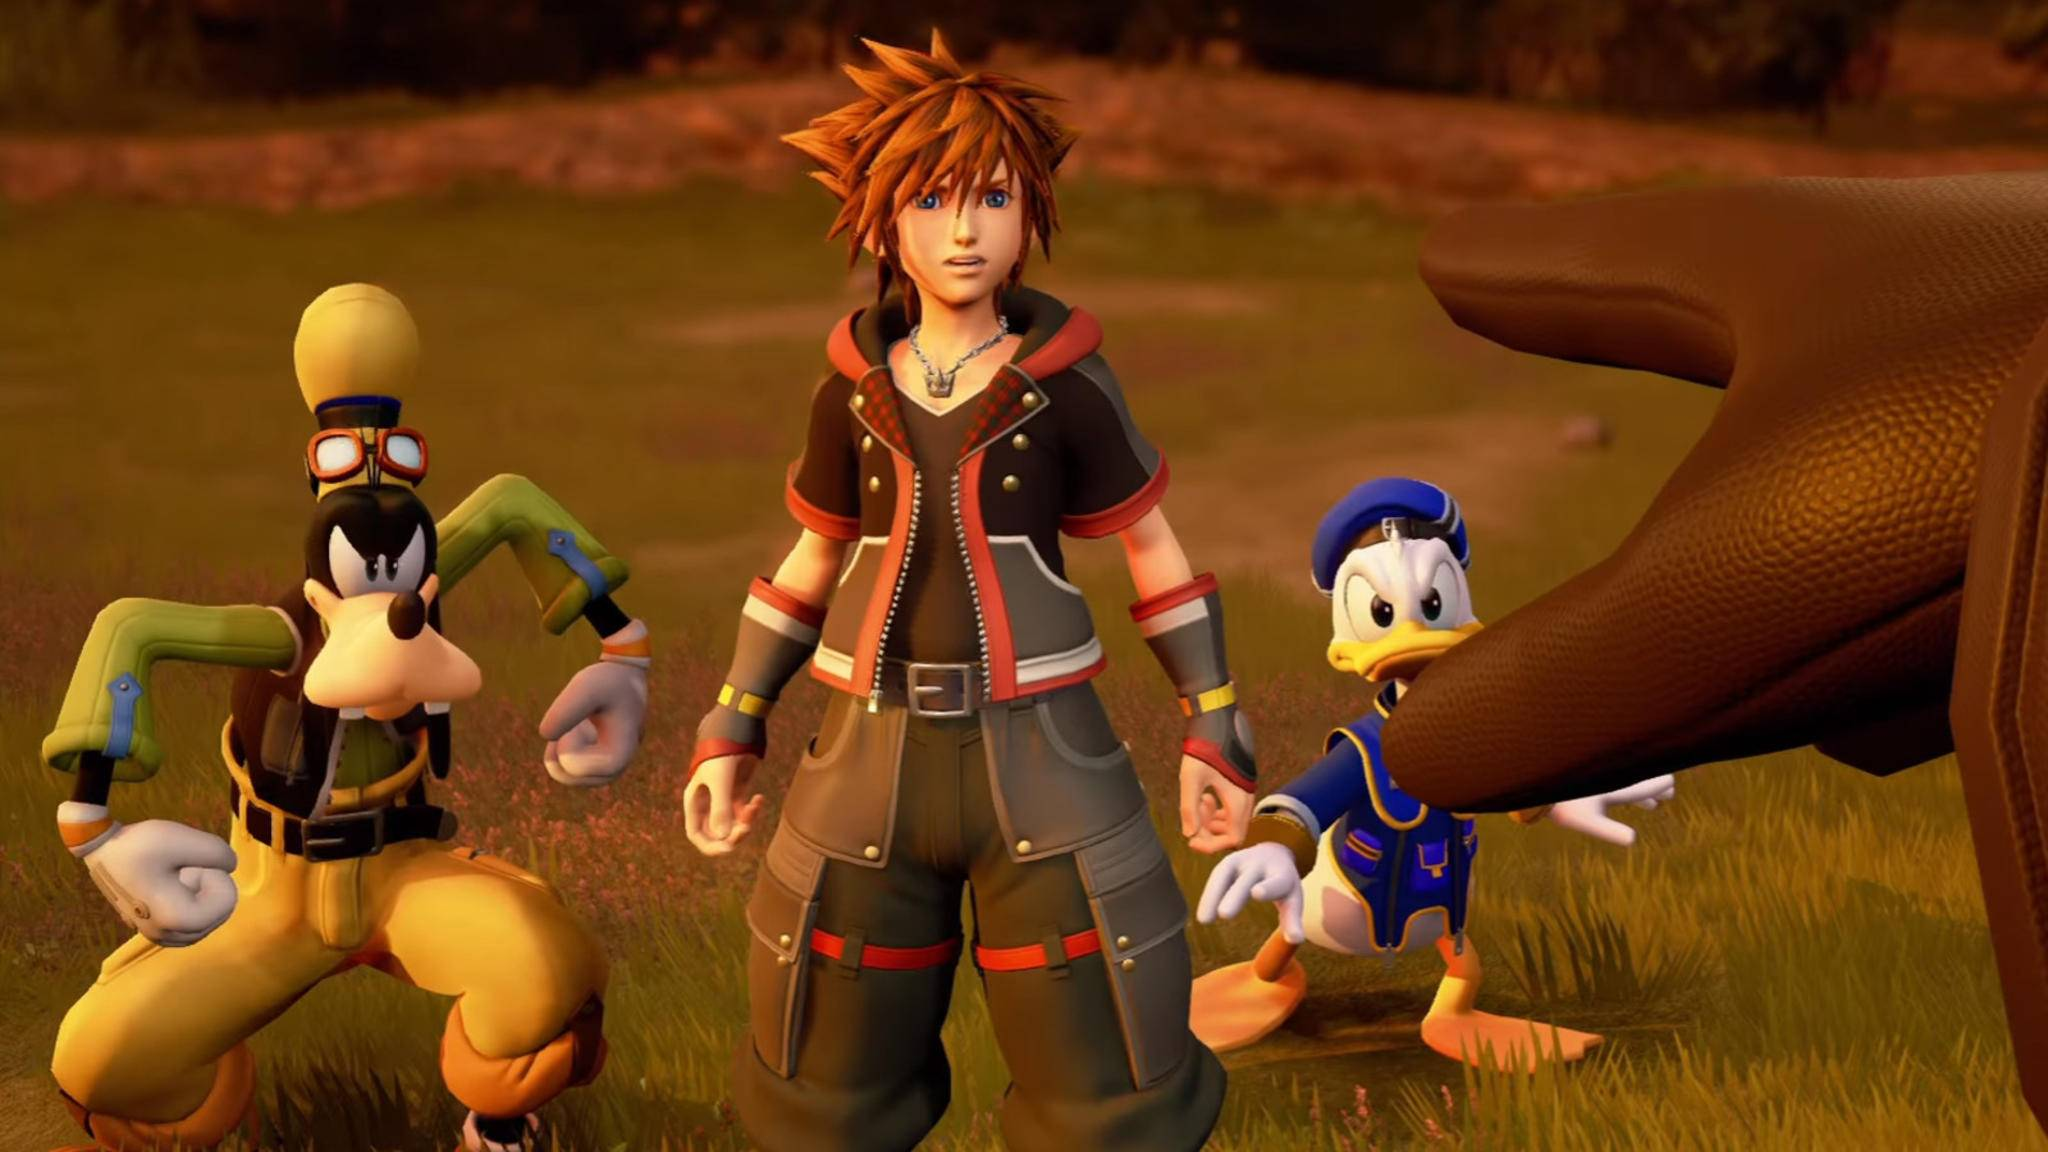 kingdom-hearts-3-trailer-screenshot